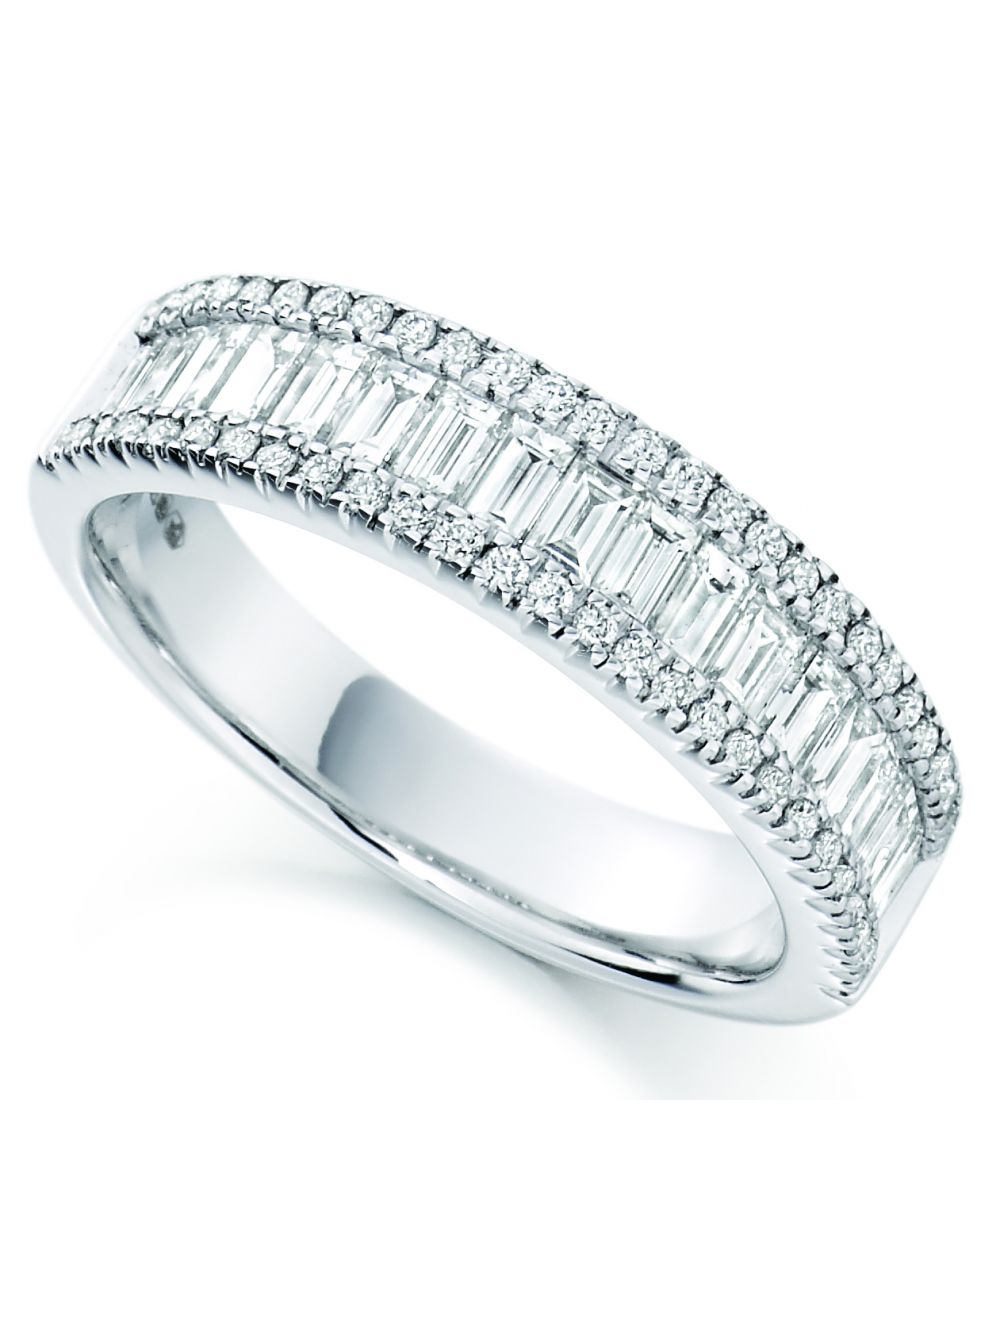 18Ct White Gold Baguette And Round Brilliant Diamond Eternity Ring Regarding 2019 Baguette And Round Diamond Anniversary Bands In White Gold (View 4 of 25)